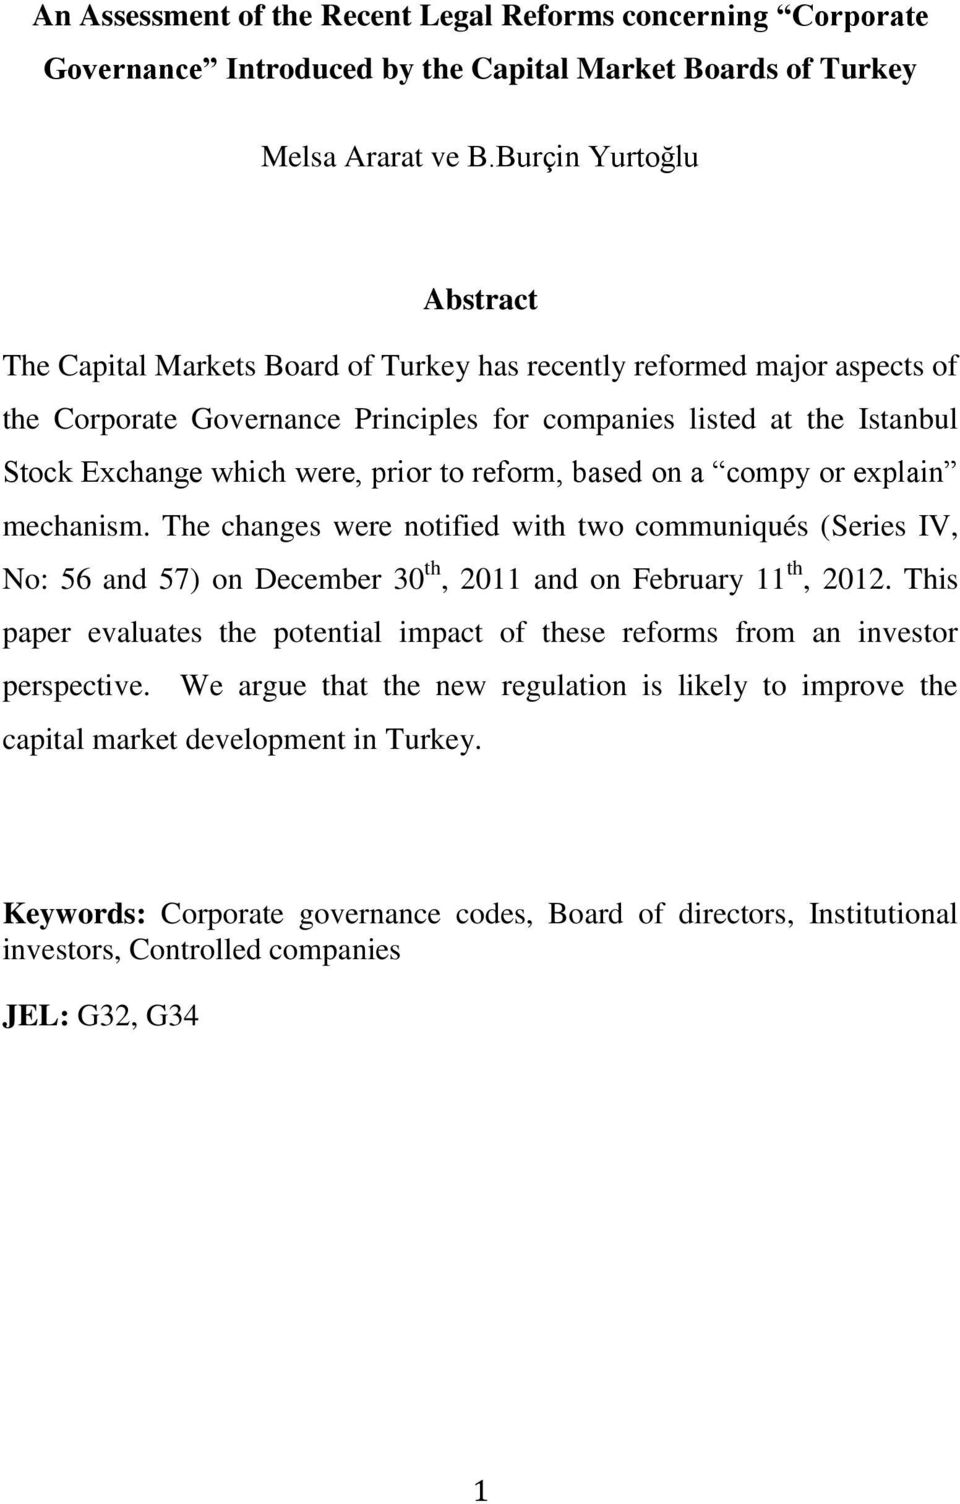 prior to reform, based on a compy or explain mechanism. The changes were notified with two communiqués (Series IV, No: 56 and 57) on December 30 th, 2011 and on February 11 th, 2012.